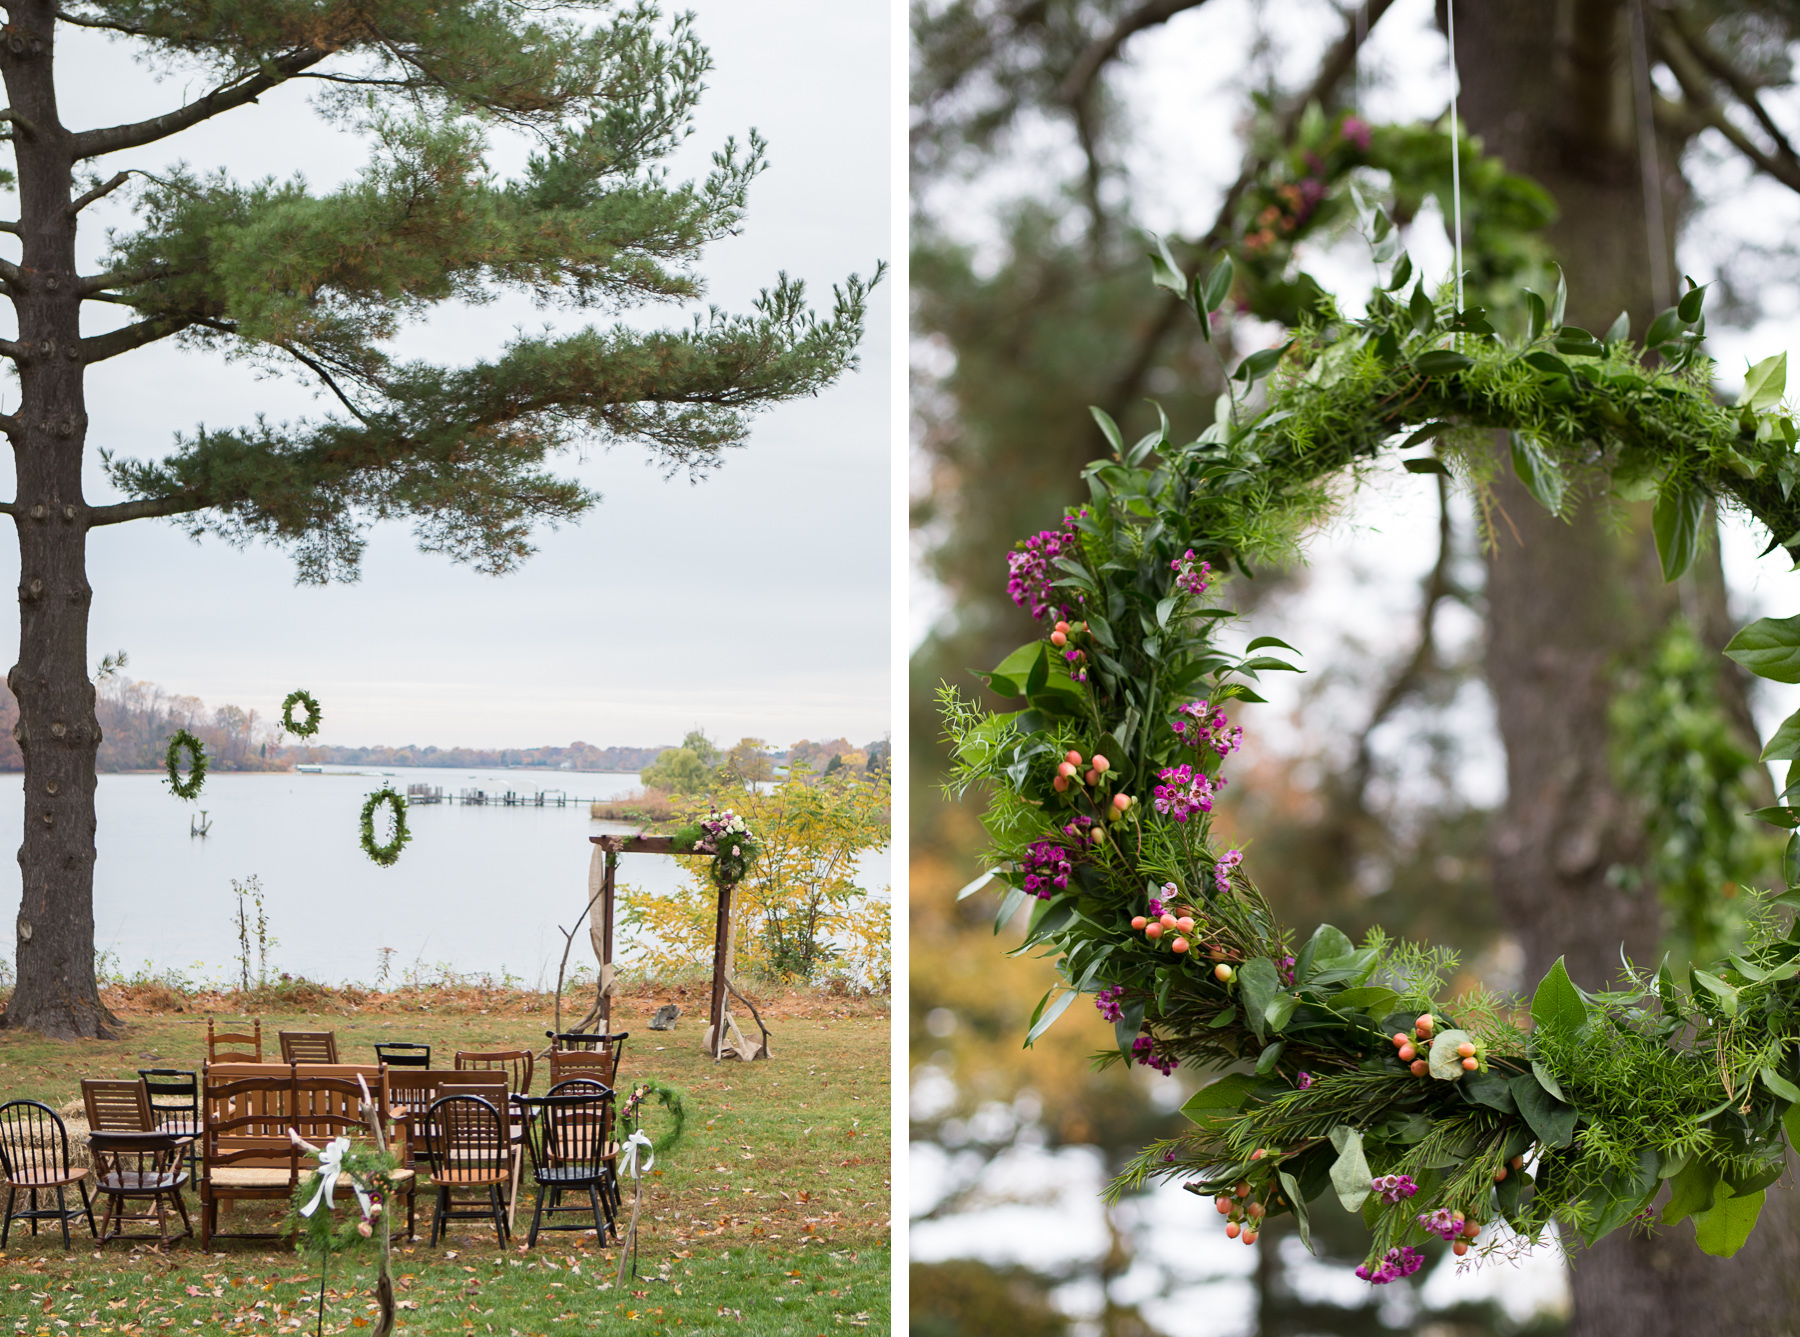 hanging-wreathes-ceremony-backdrop-1.jpg